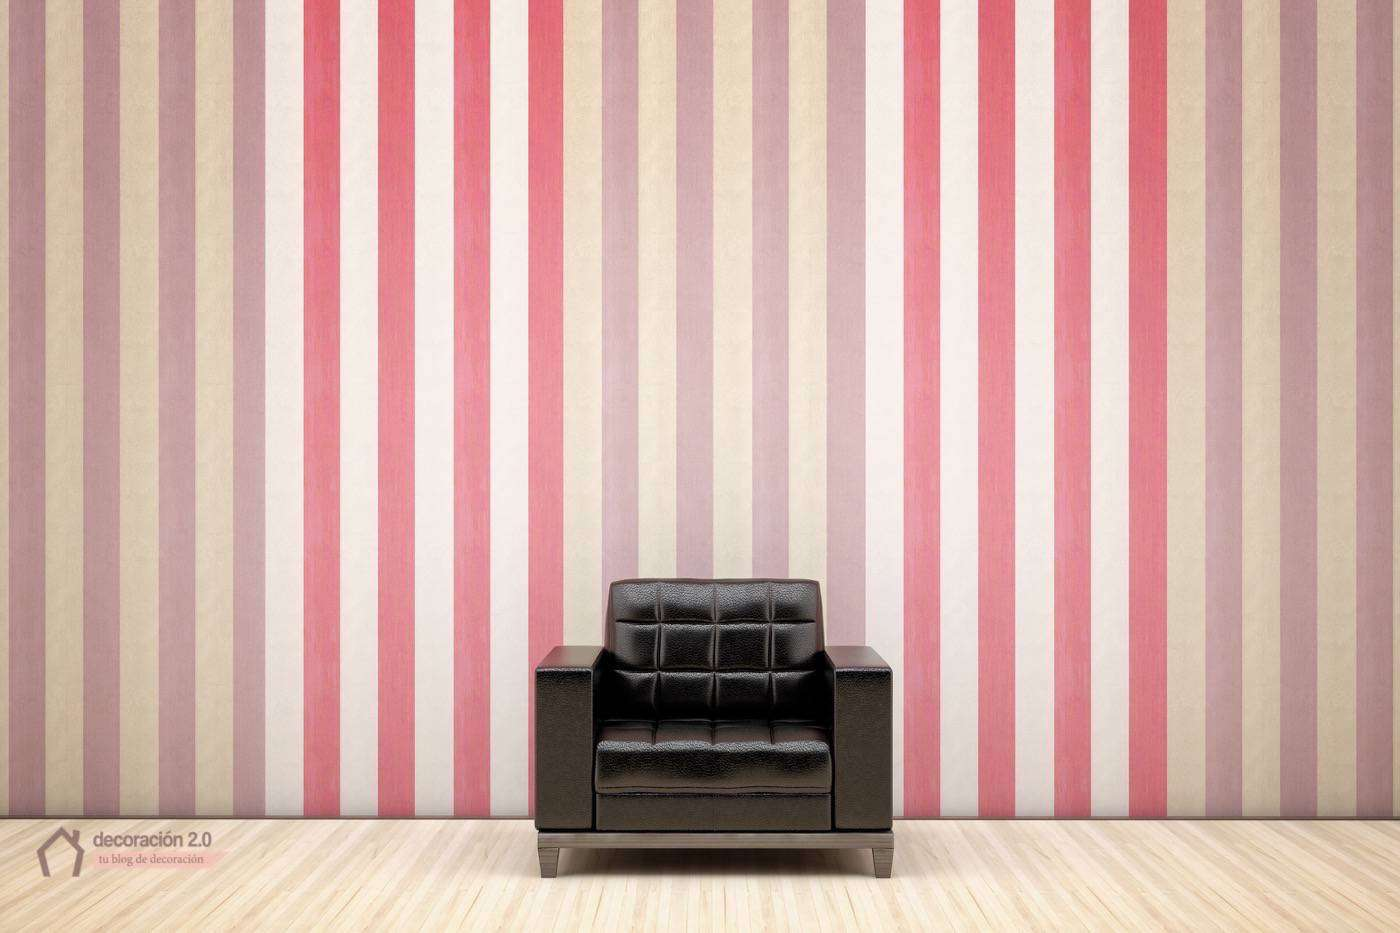 Stripes on the wall and black armchair